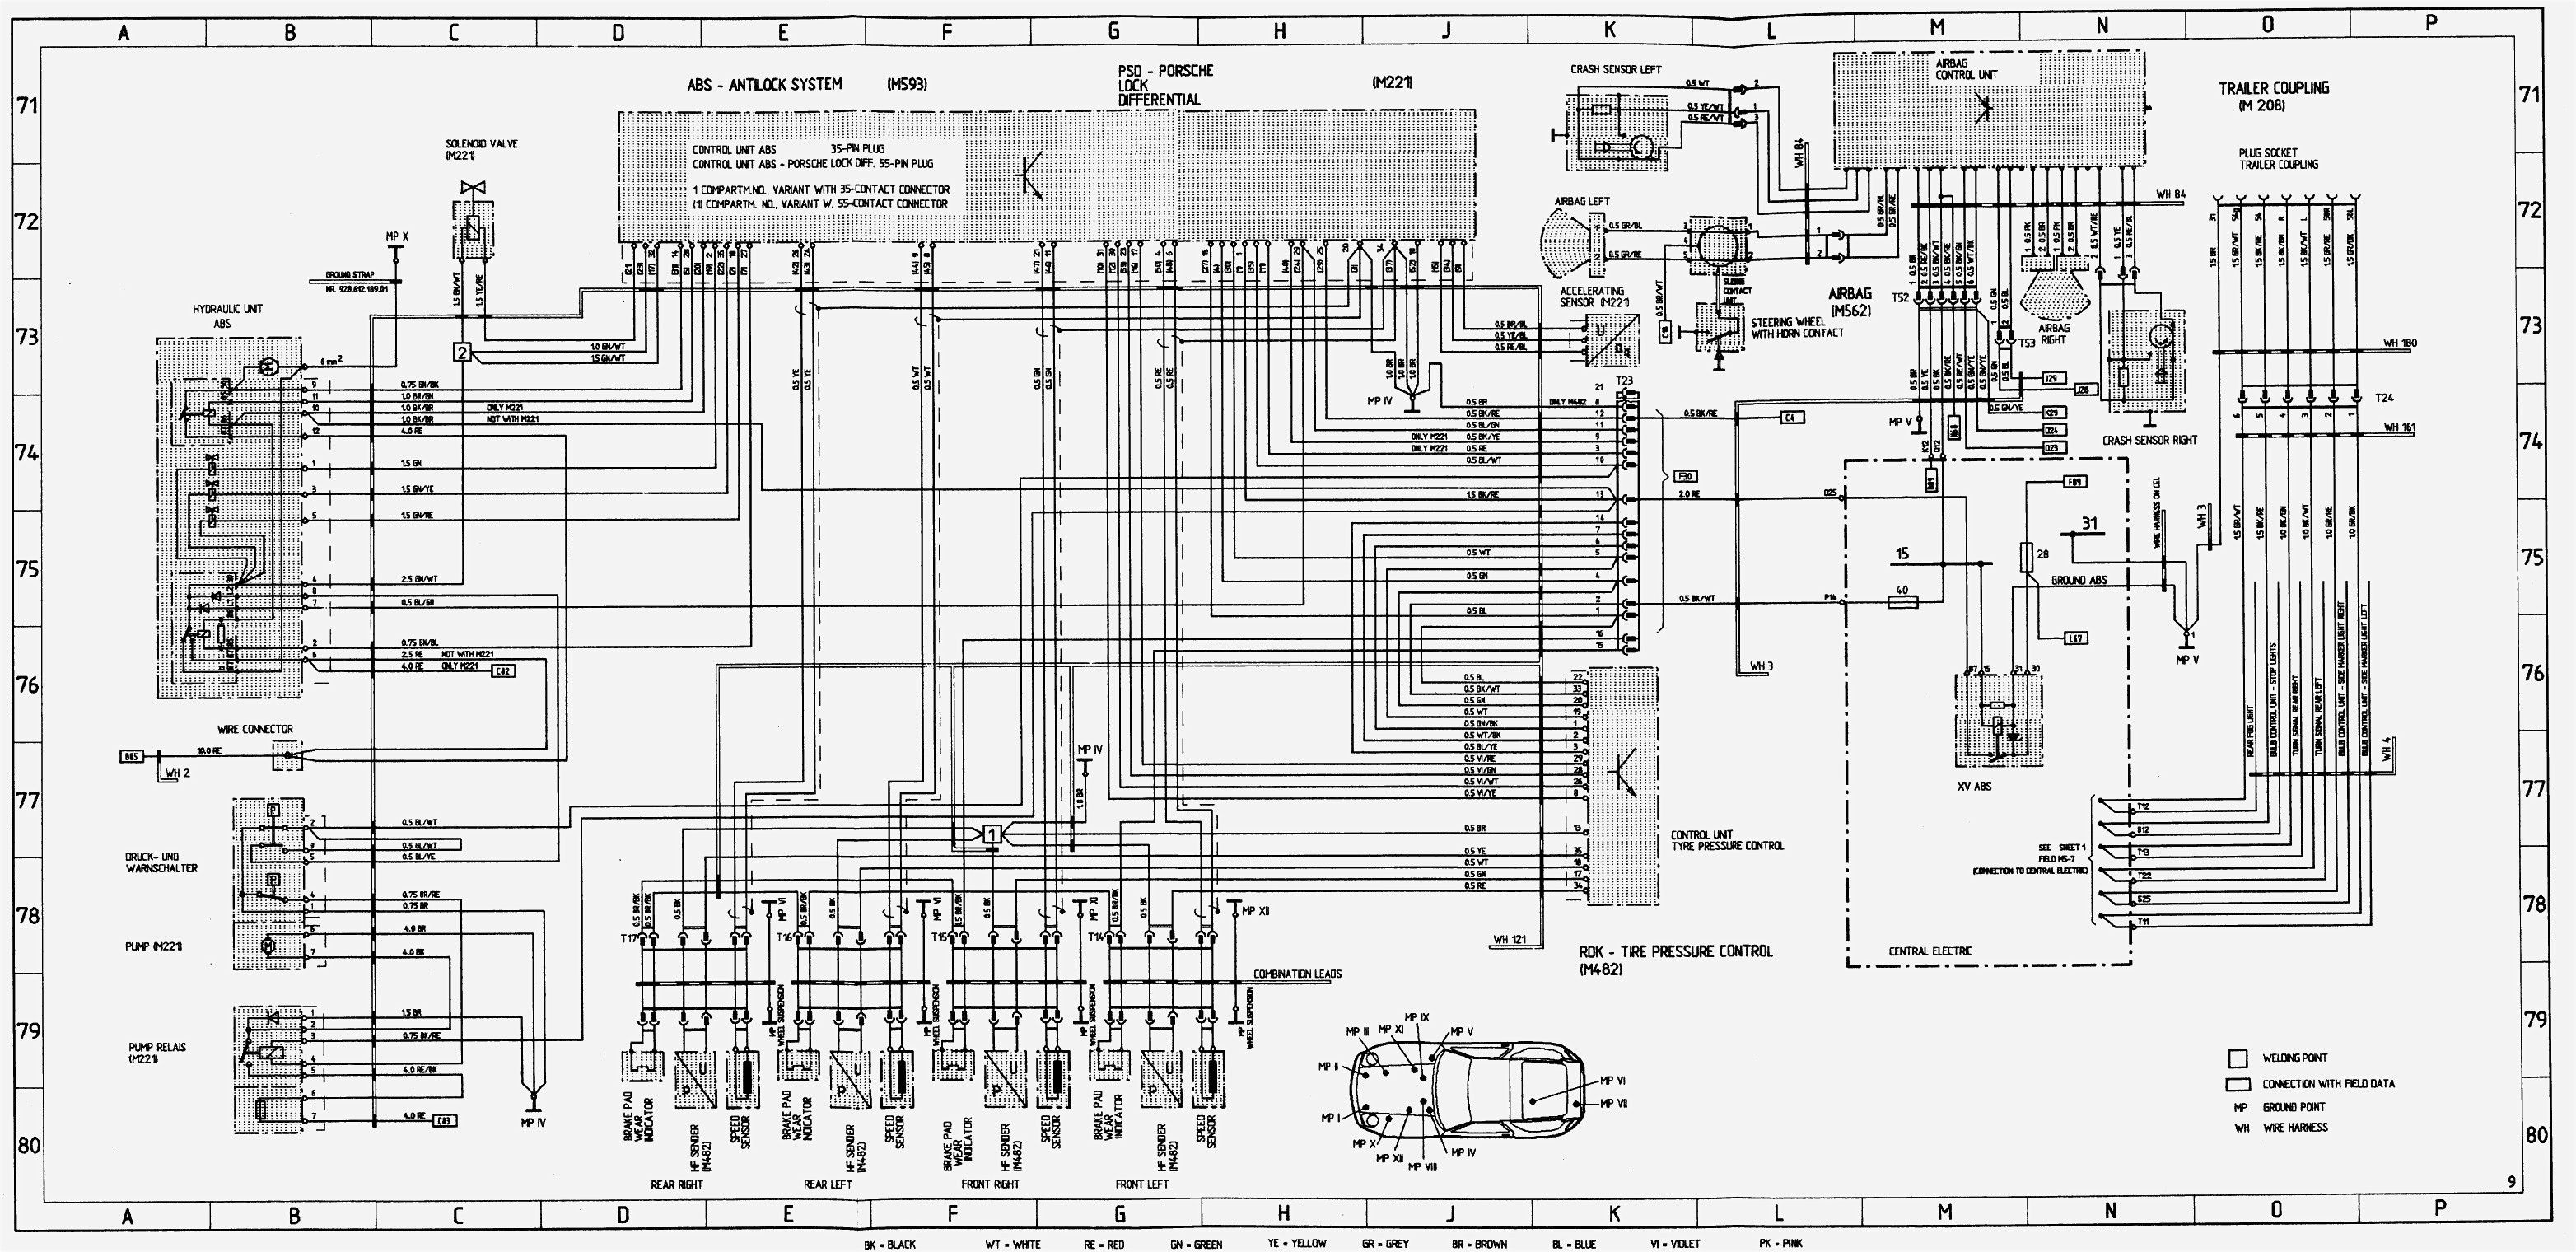 New Wiring Diagram Key Diagram Wiringdiagram Diagramming Diagramm Visuals Visualisation Graphical Ch Electrical Wiring Diagram Bmw E46 Electrical Wiring